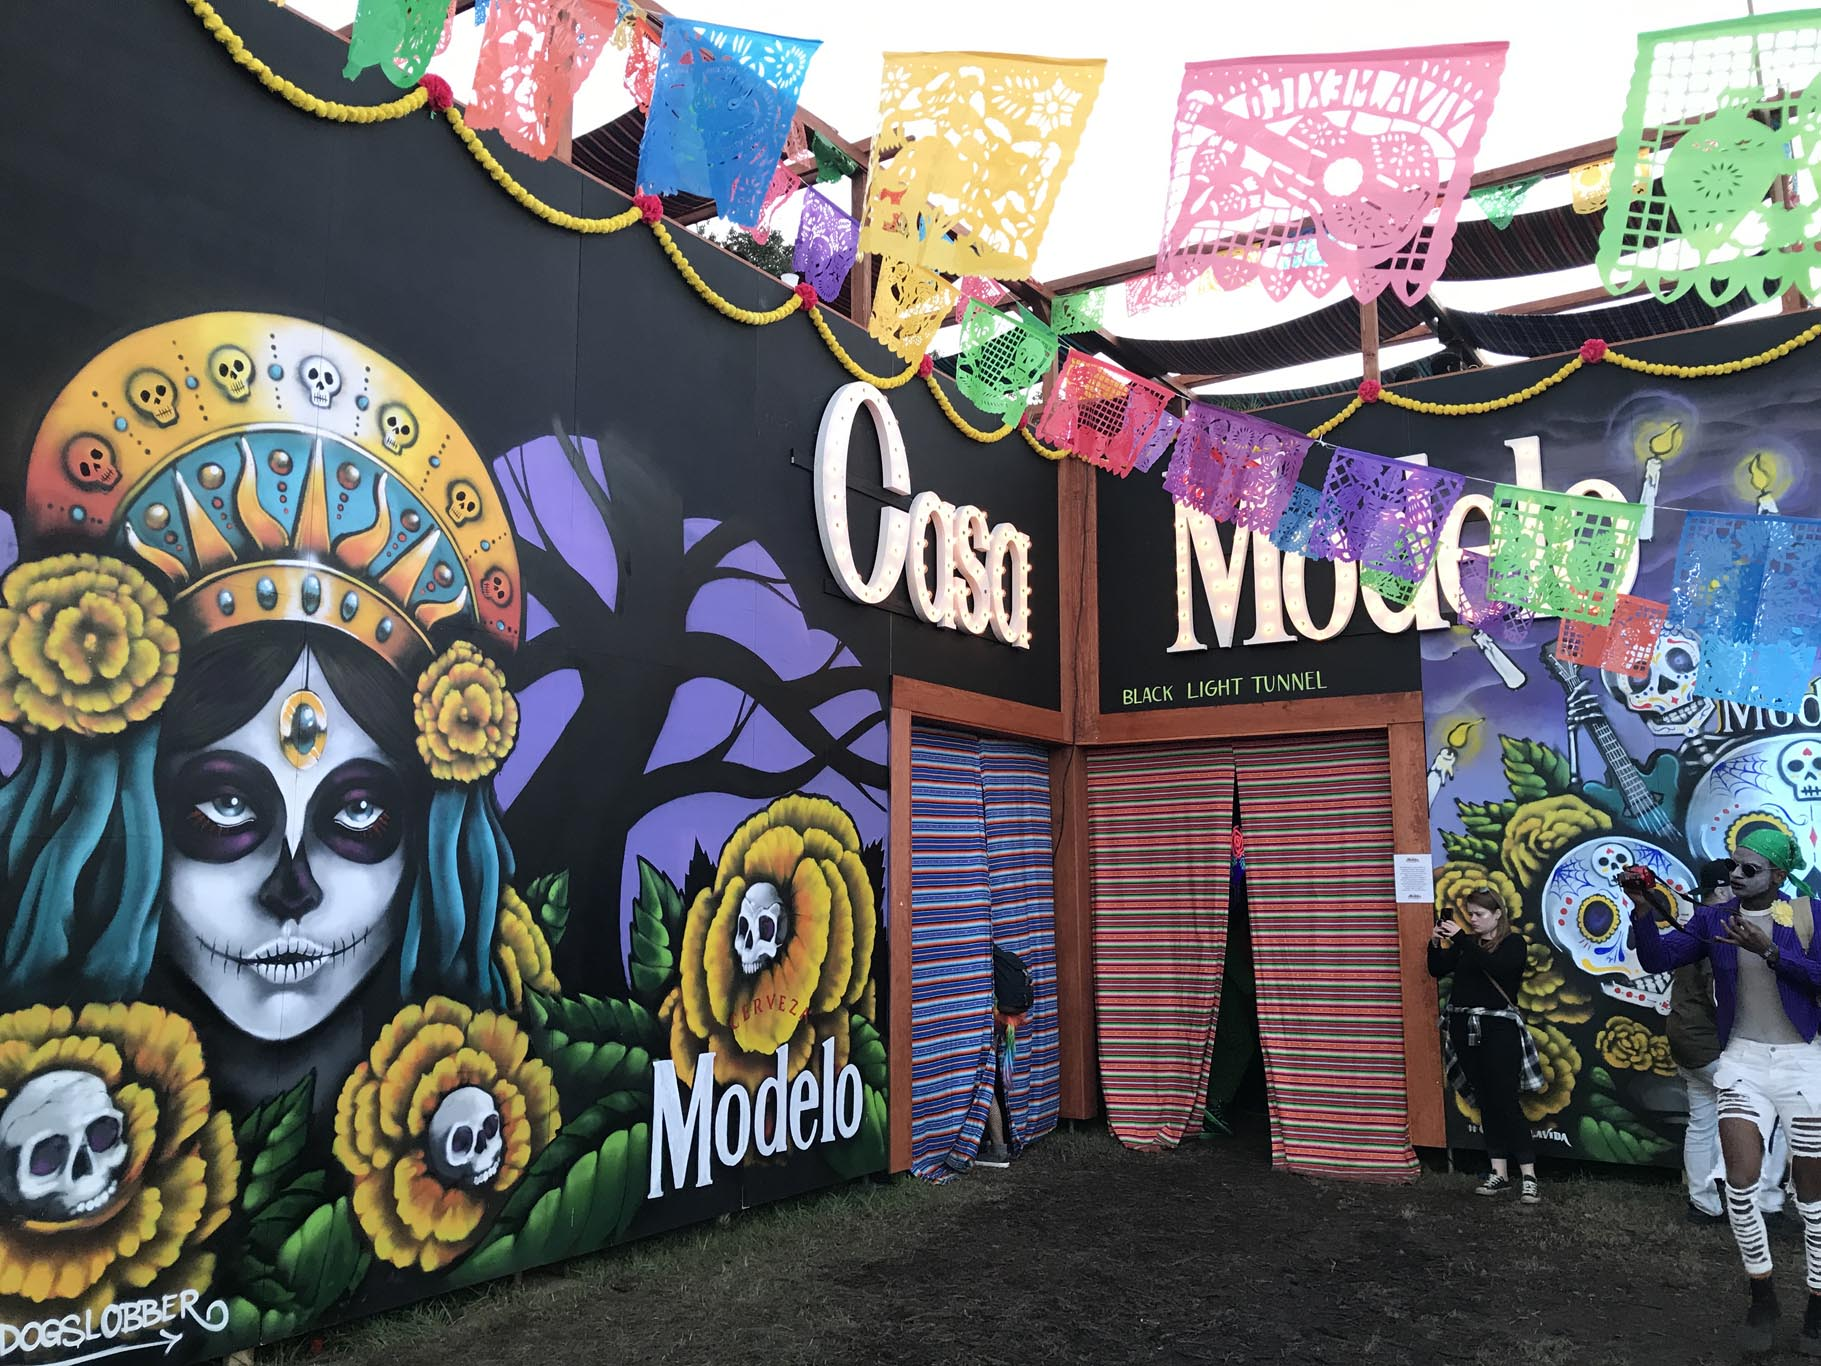 Casa Modelo at Voodoo Music Festival 2017